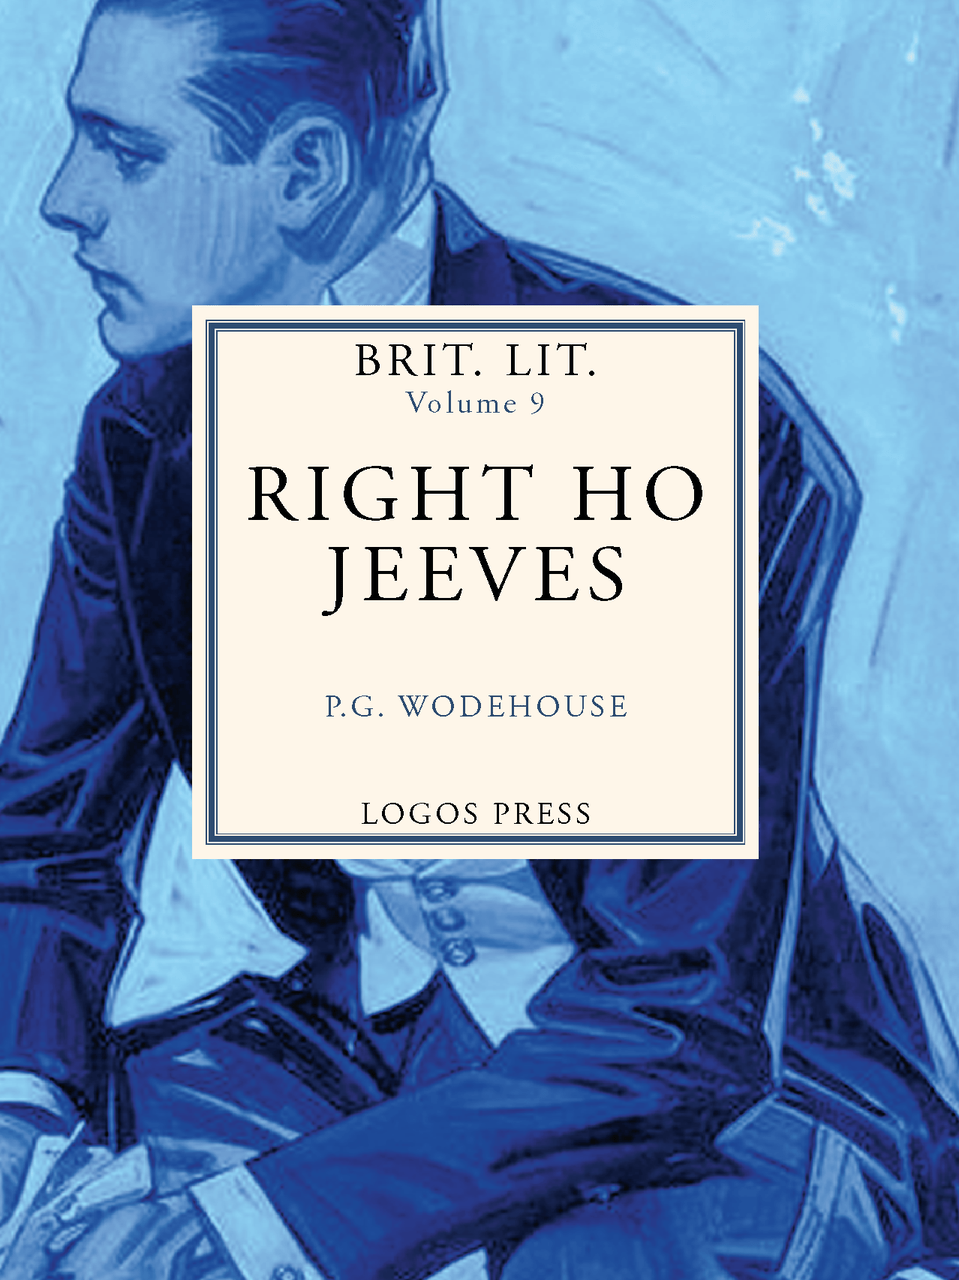 Brit Lit Vol. IX – Right Ho Jeeves